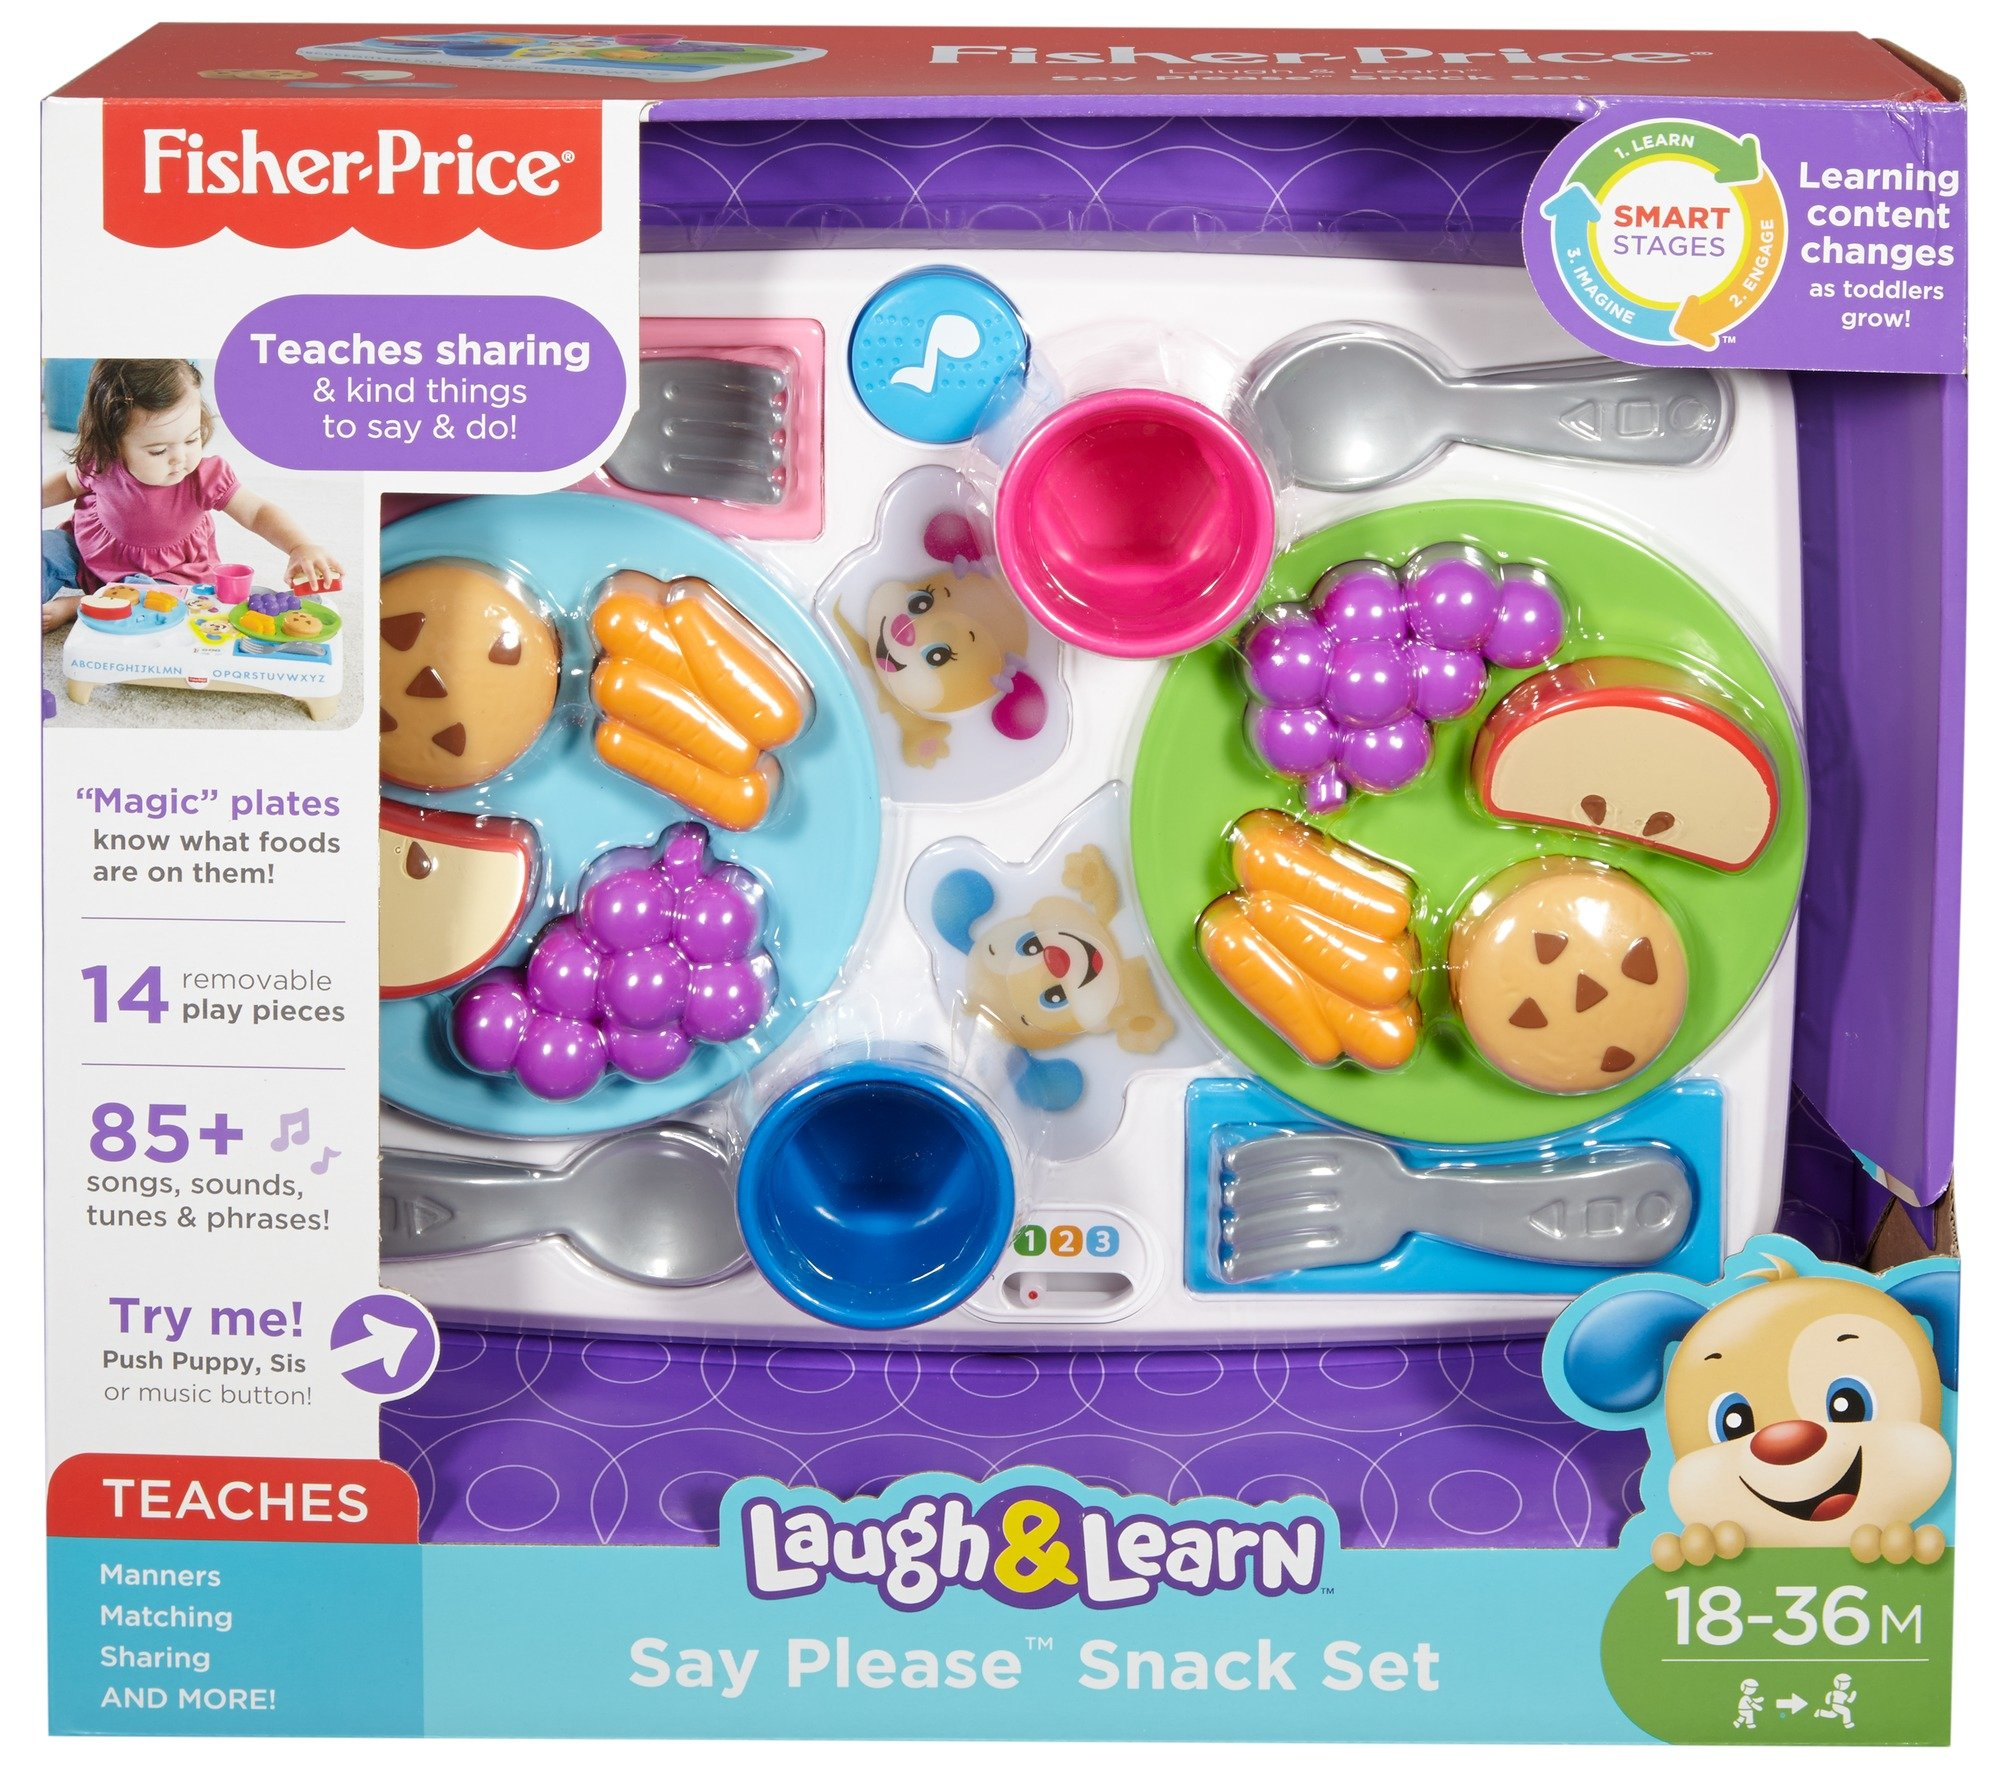 Fisher-Price FBM90 Say Please Snack Set, Laugh and Learn Toddler Kitchen and Food Role Play Toy, Suitable for 18 Months Plus by Fisher-Price (Image #6)